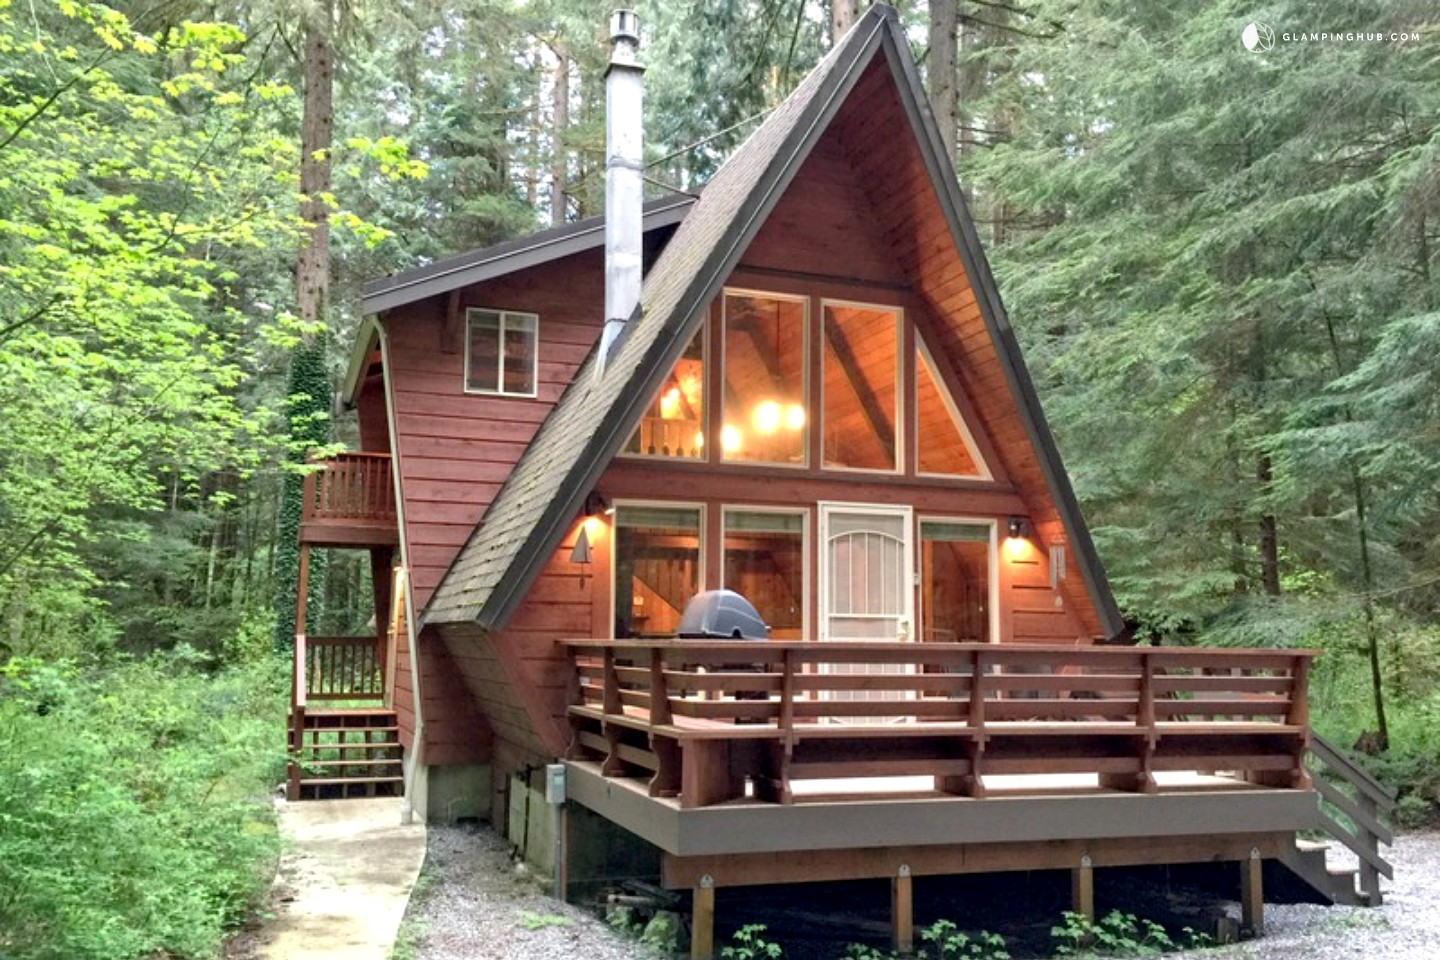 Unique a frame cabin rental near vancouver for Washington state cabins for rent